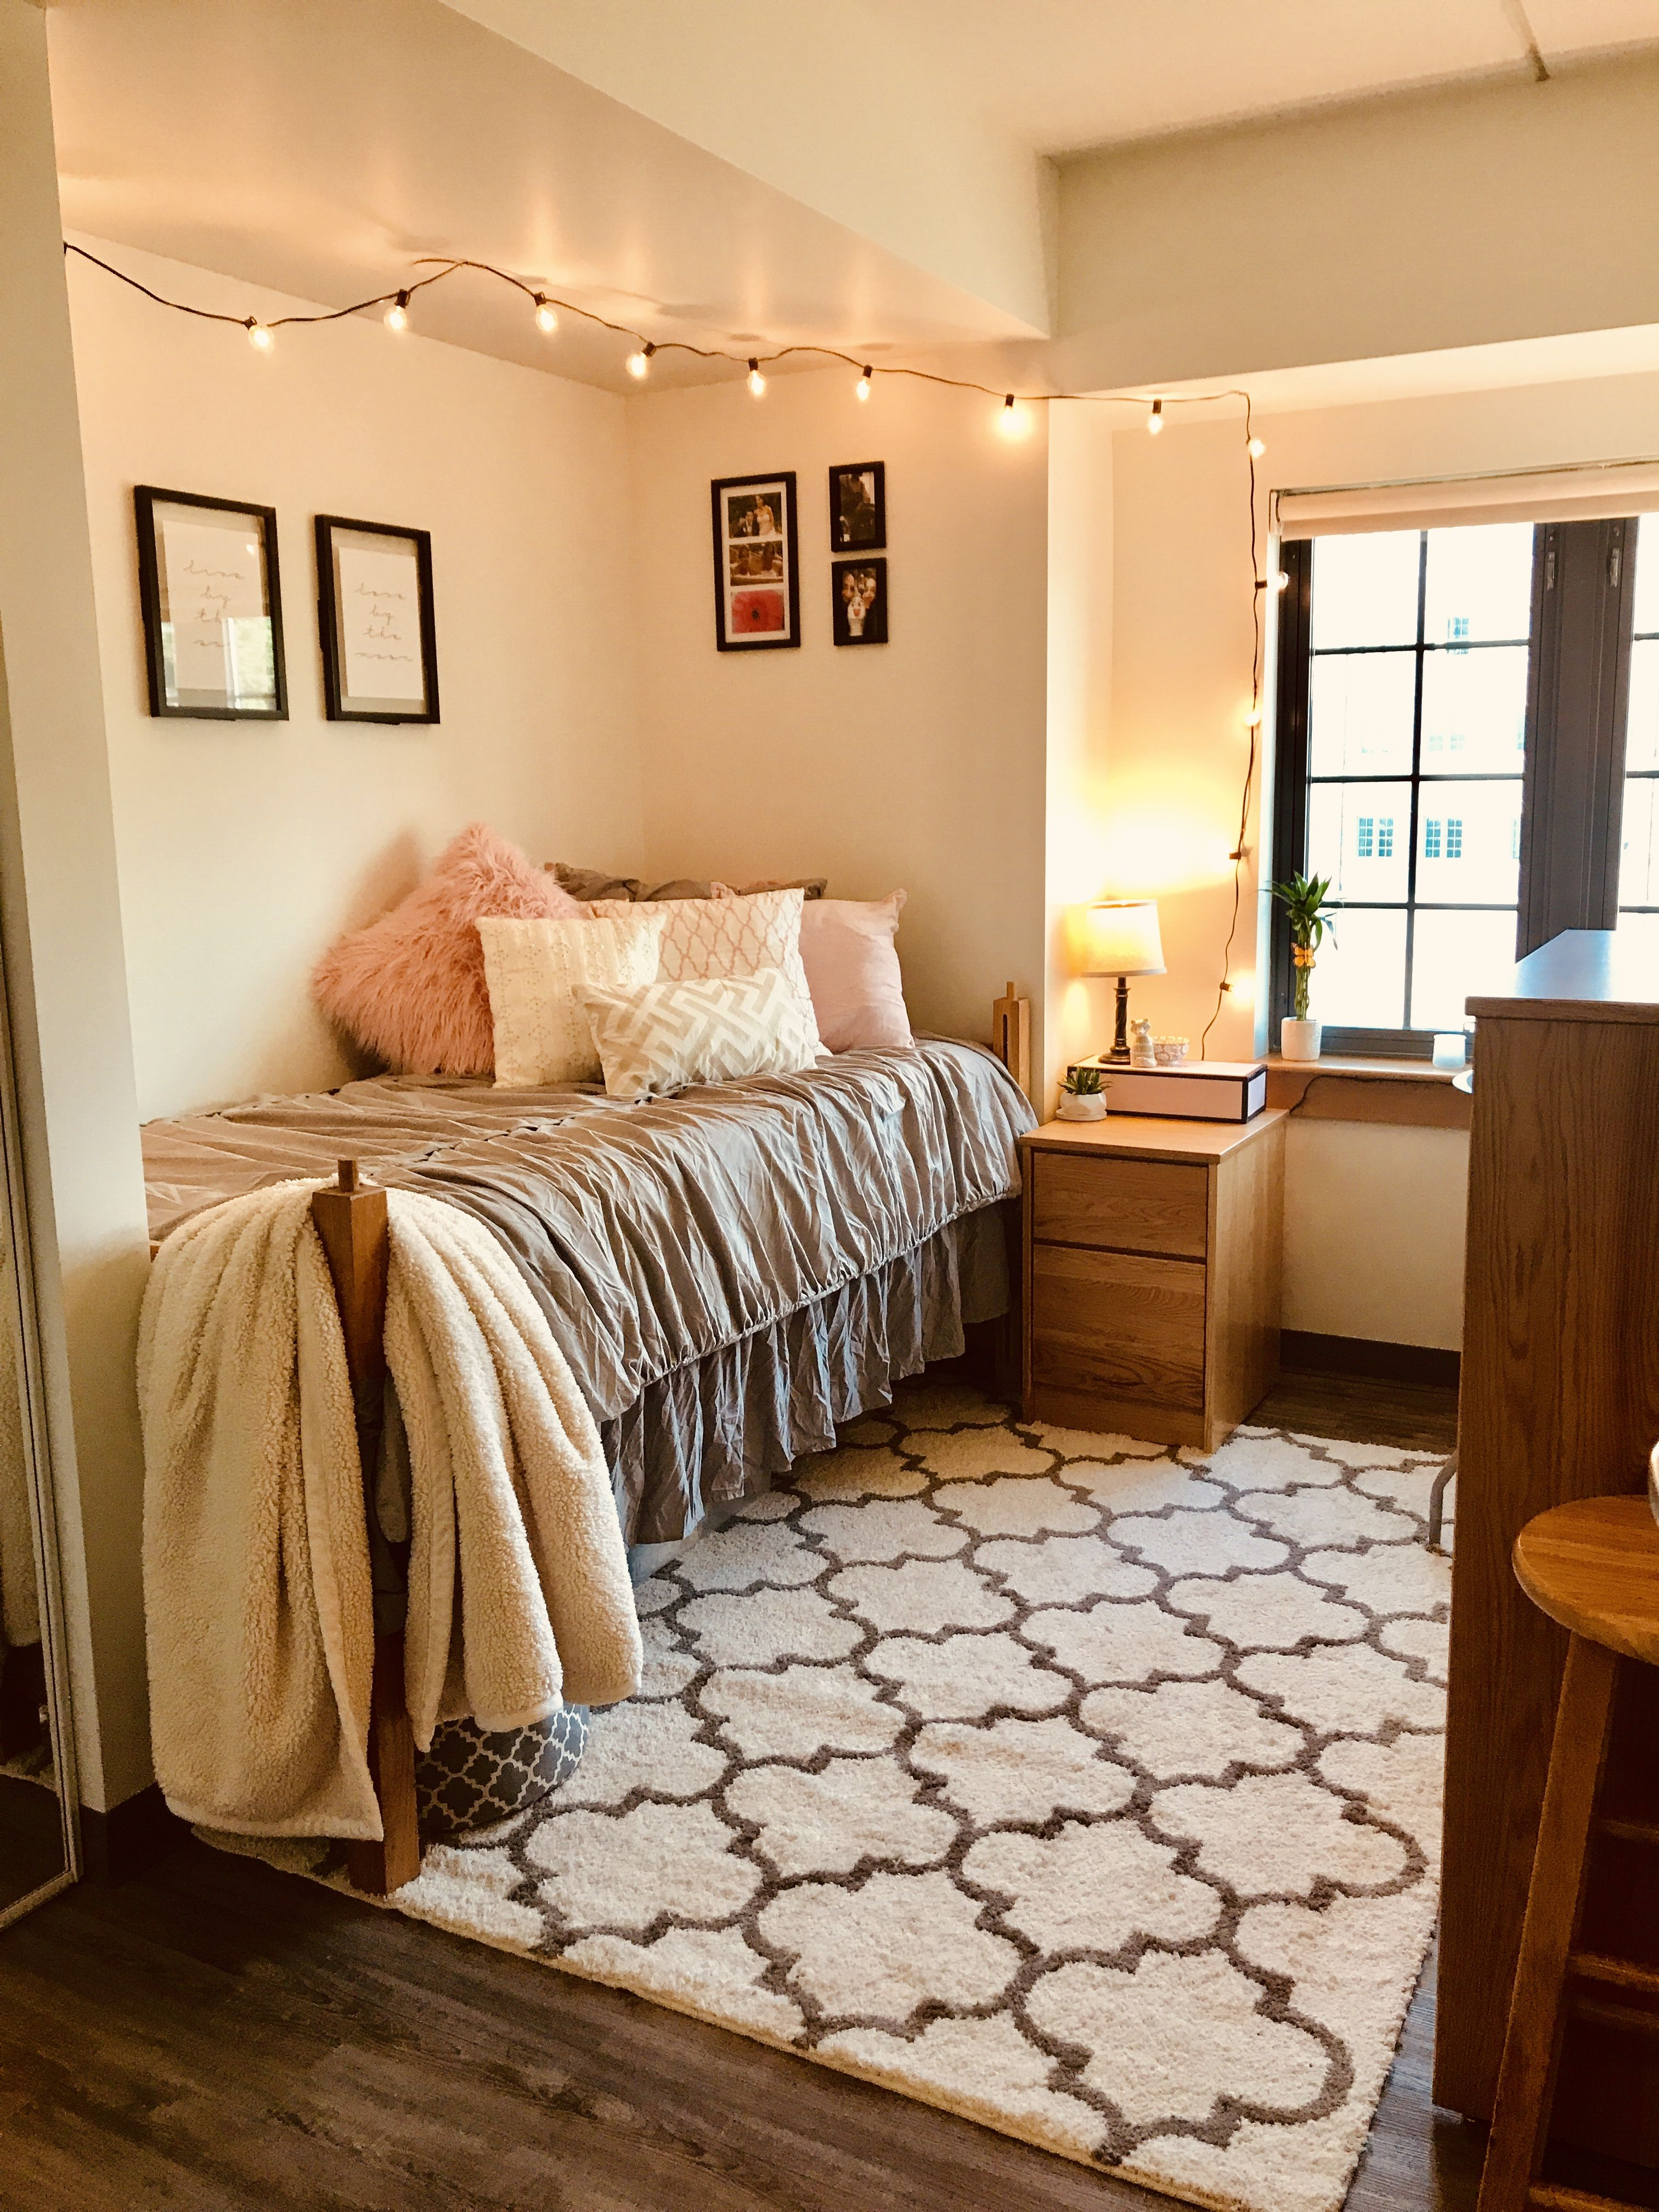 final product of my pinterest inspired dorm room! | Dorm ...